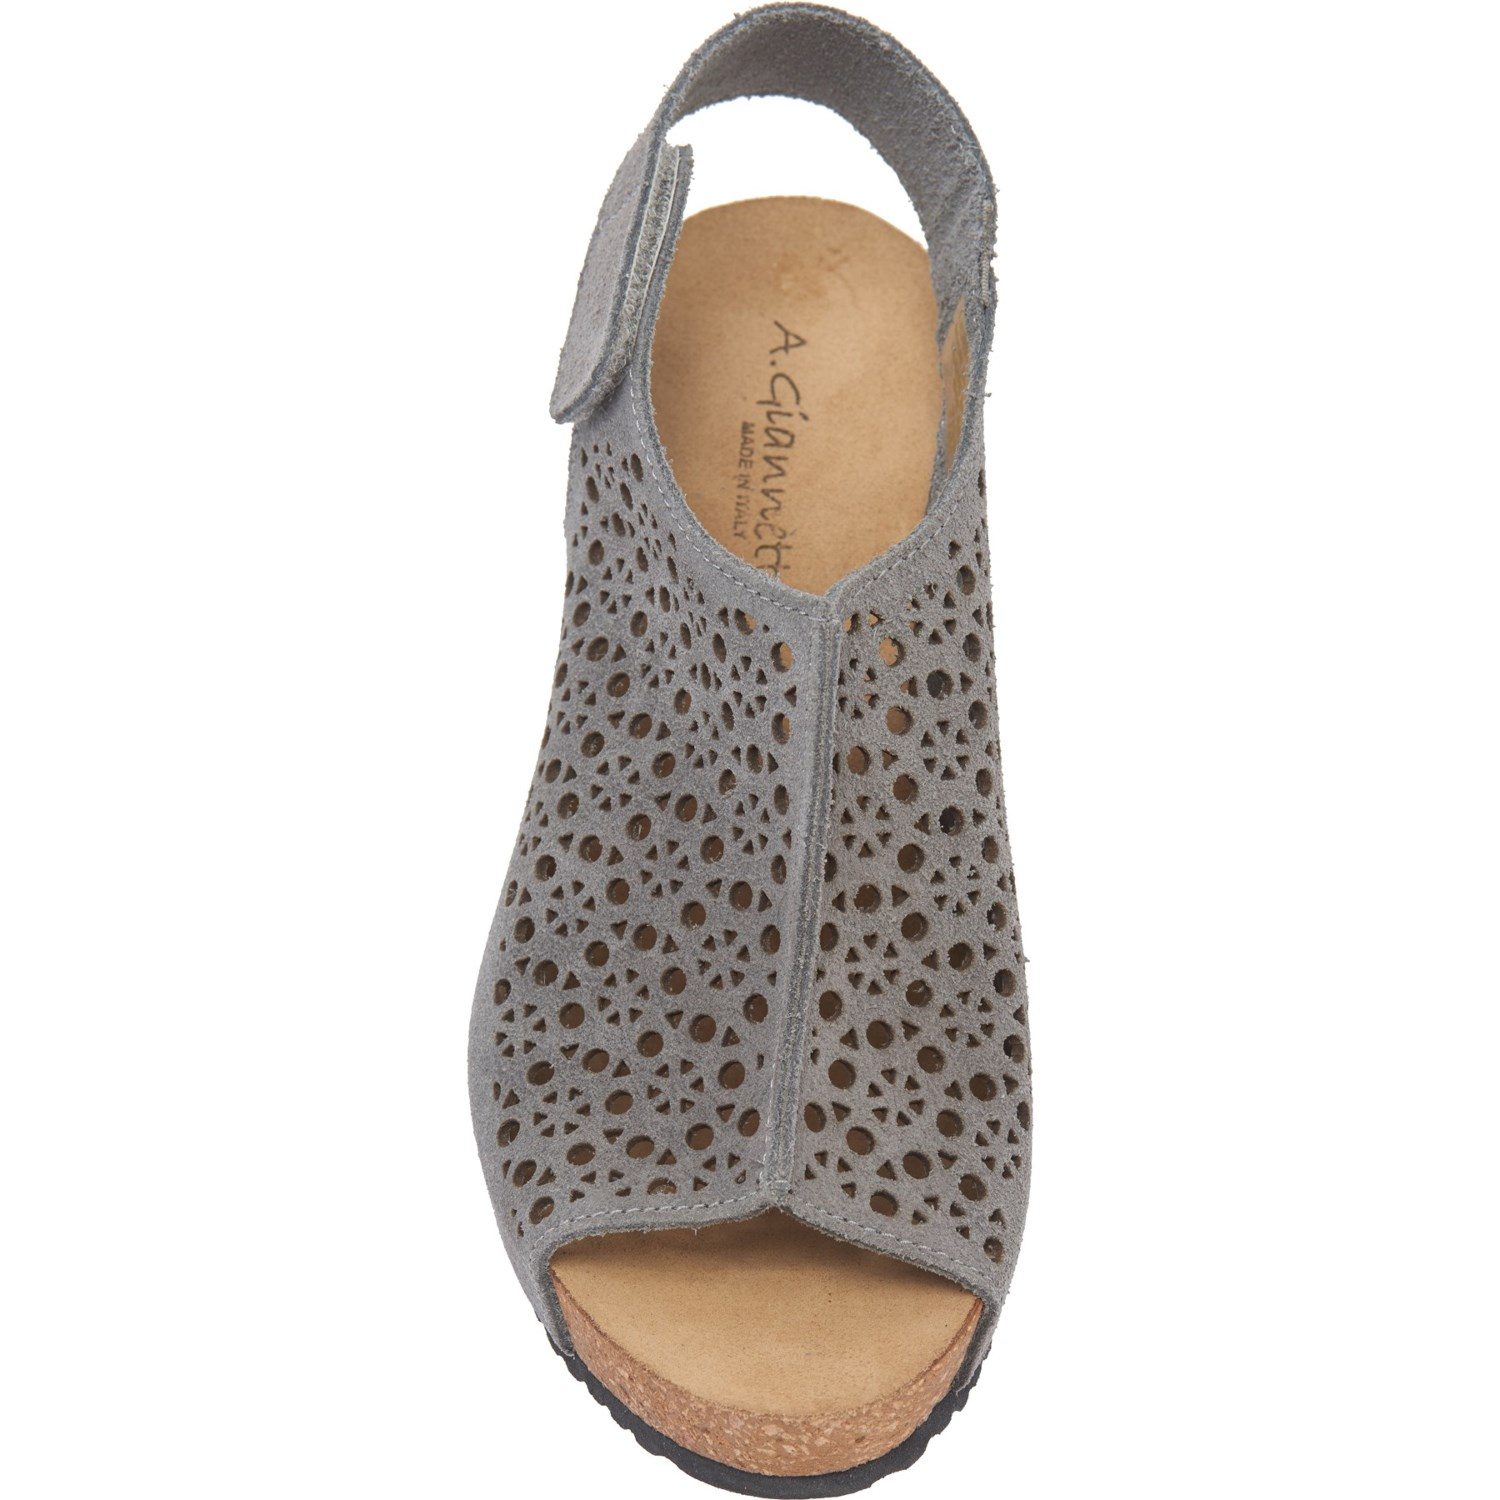 fc4acf9267 A. GIANNETTI Made in Italy Laser Perforated Wedge Sandals - Suede (For  Women)